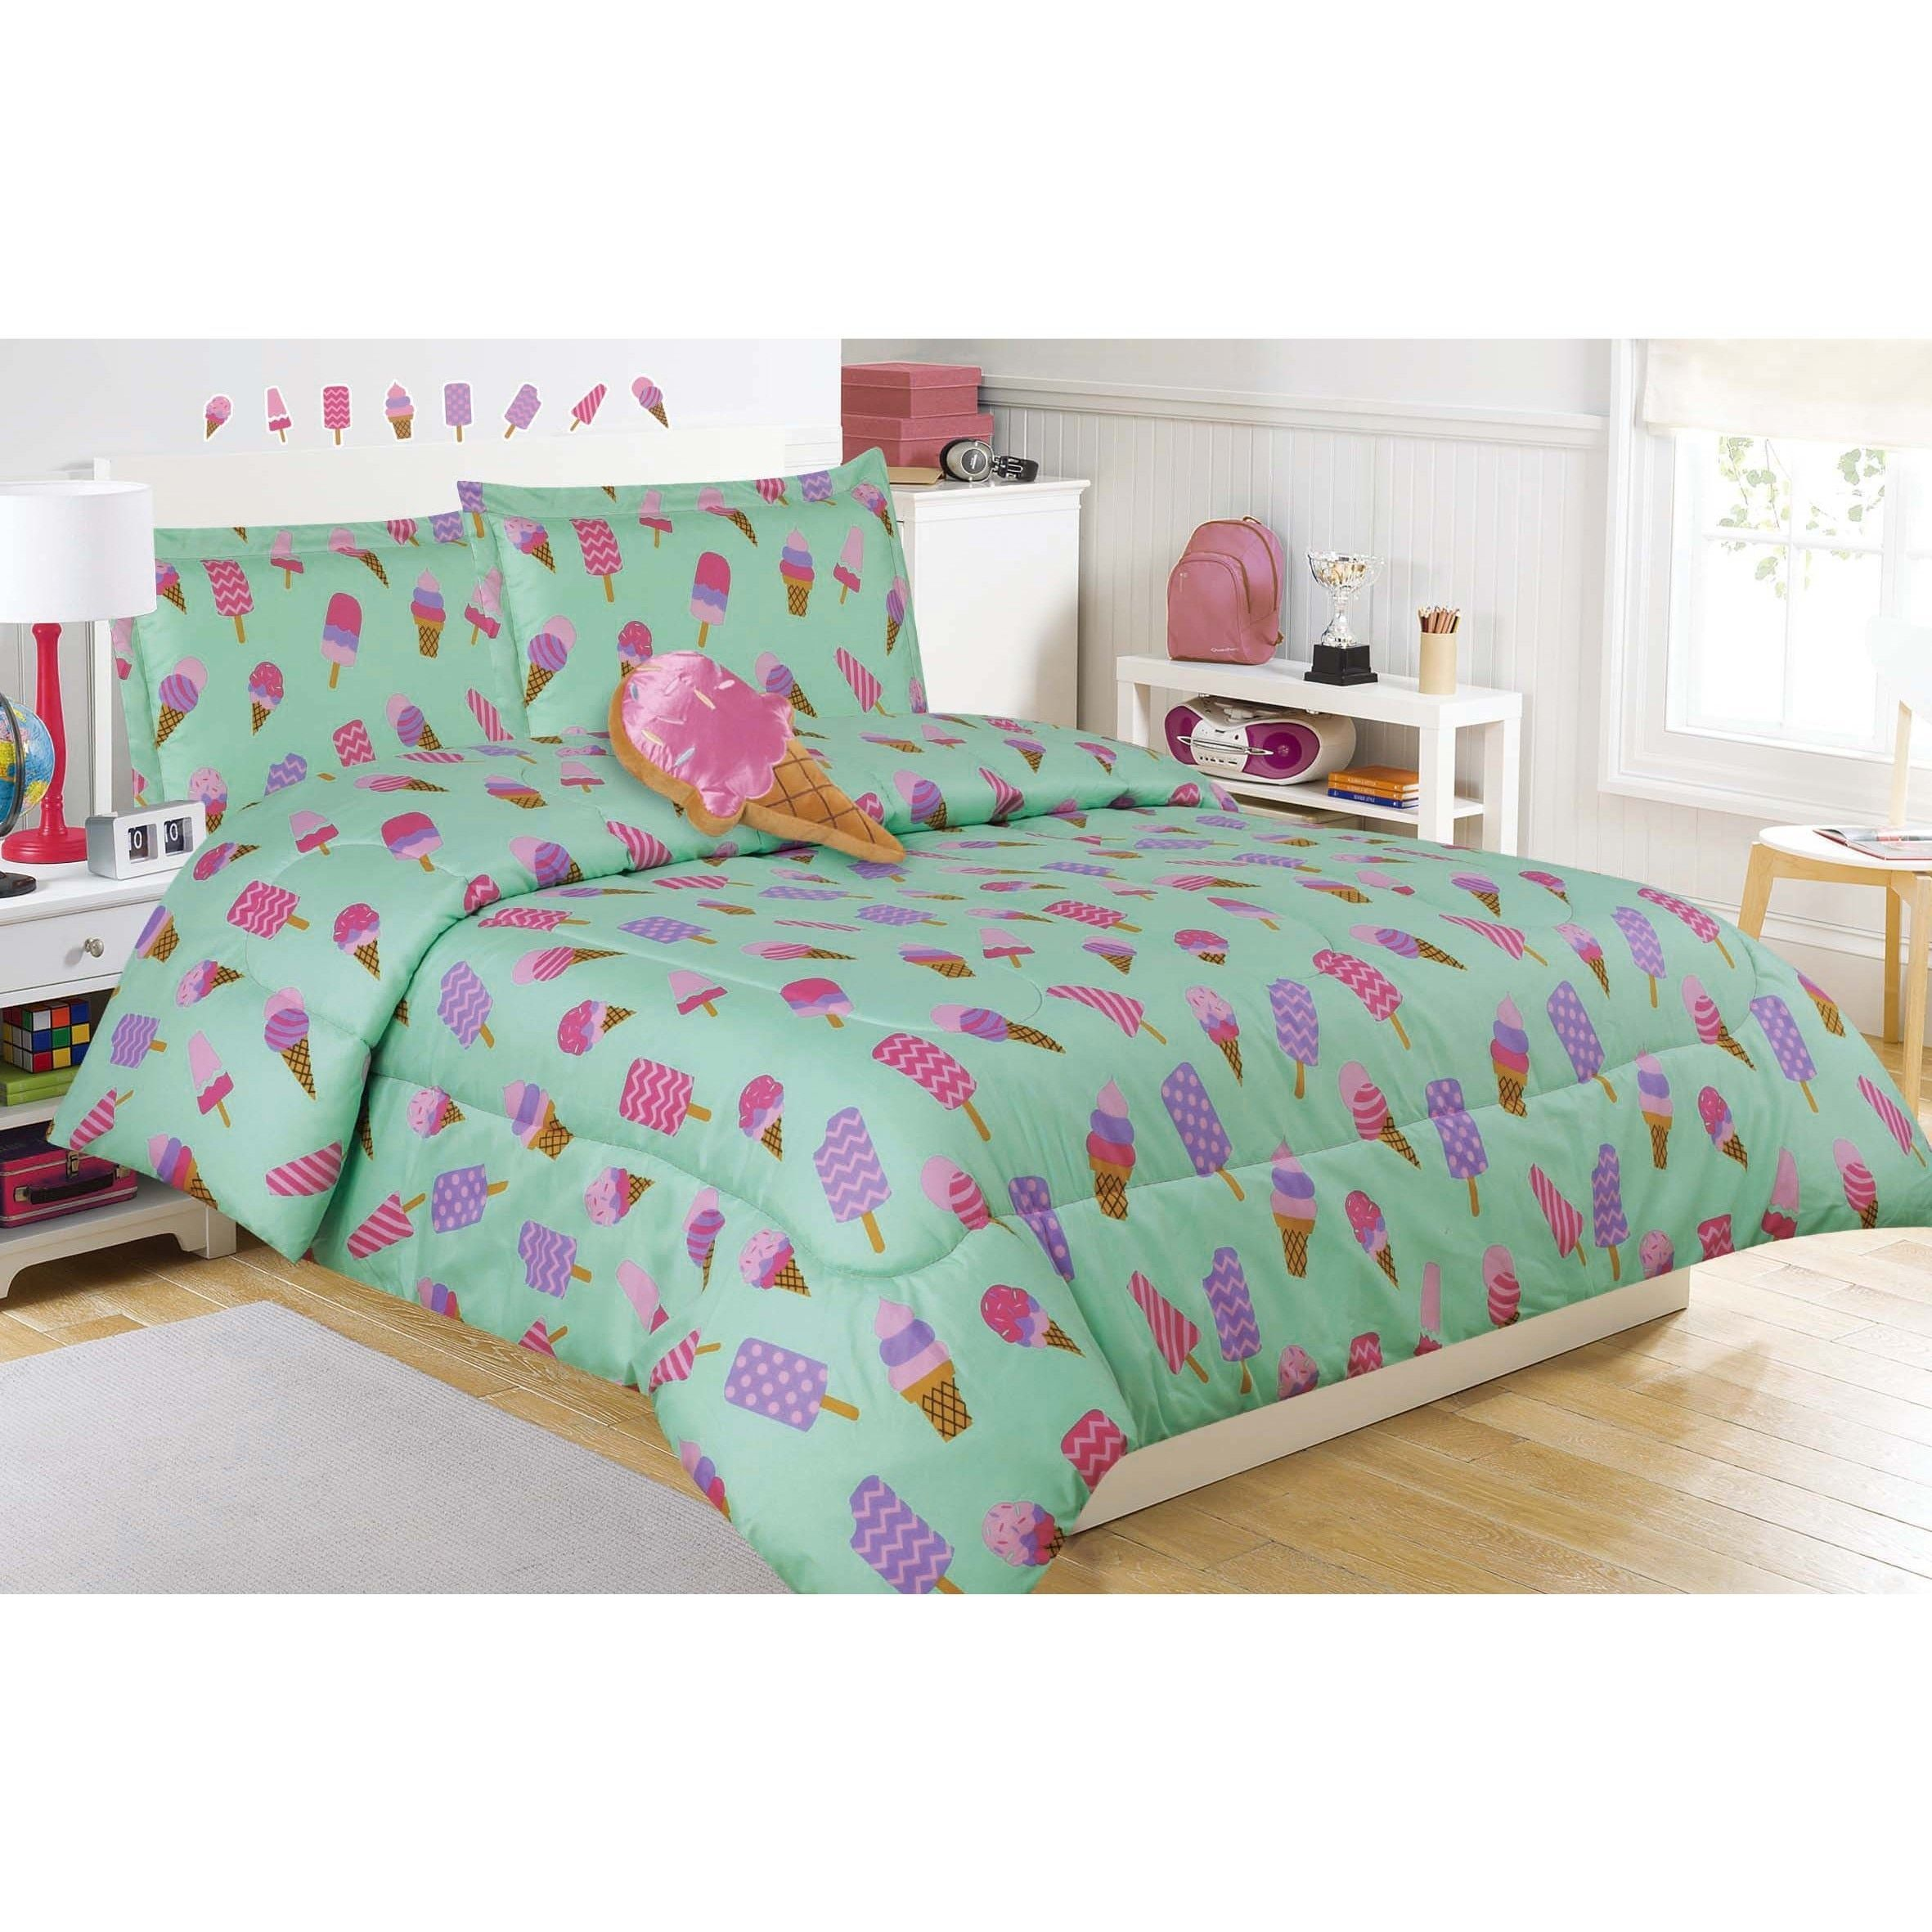 decorative full covers gender pillows shams solid material combinations multicolor printed for machine stylish size boys polyester pillow washable of excellent two bedroom neutral duvet kids block sham color duvets